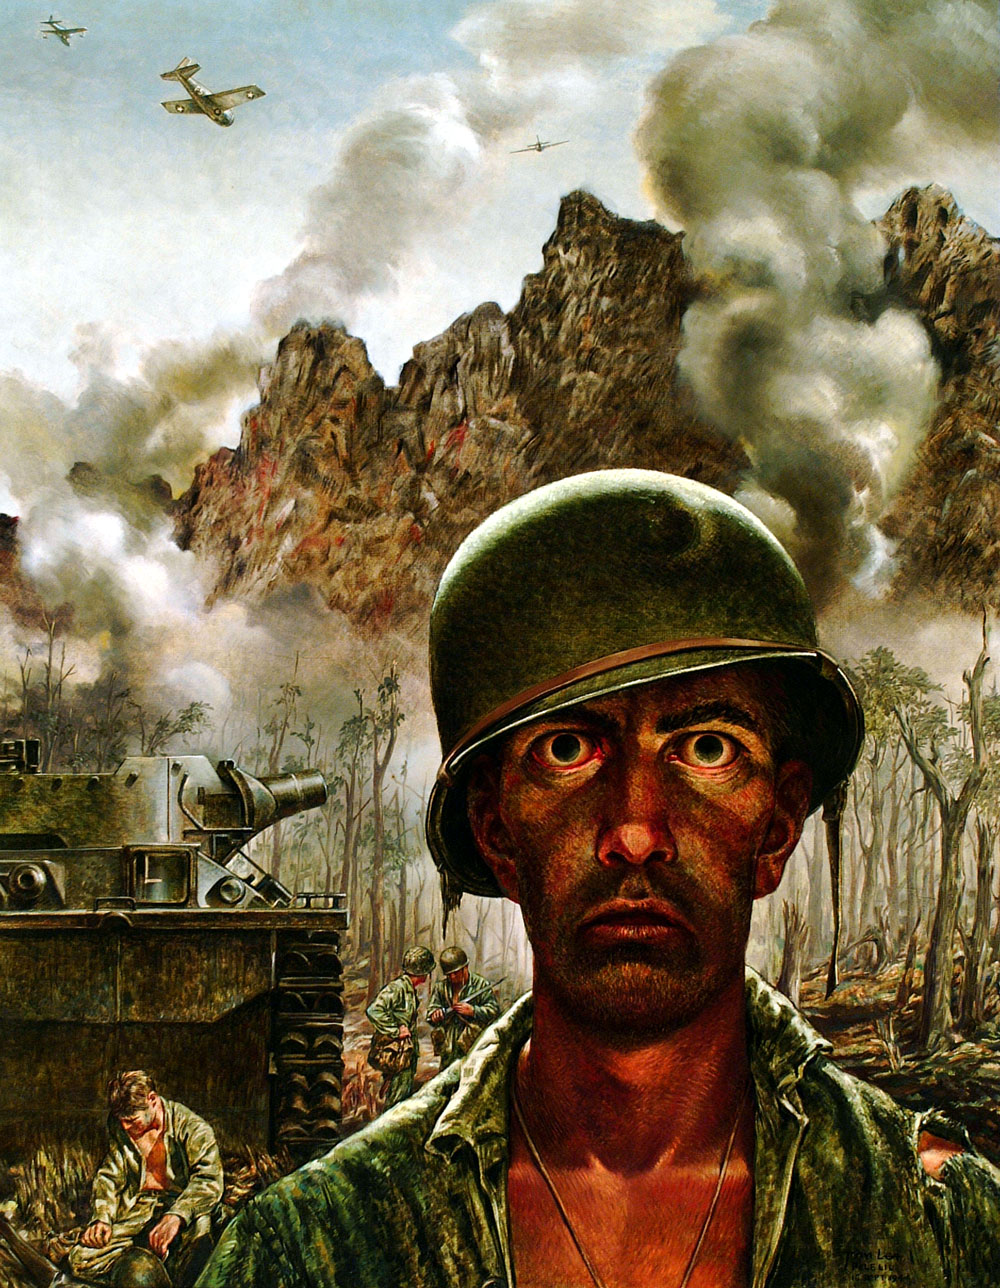 Tom Lea, The 2,000-Yard Stare, 1944. Oil on canvas.